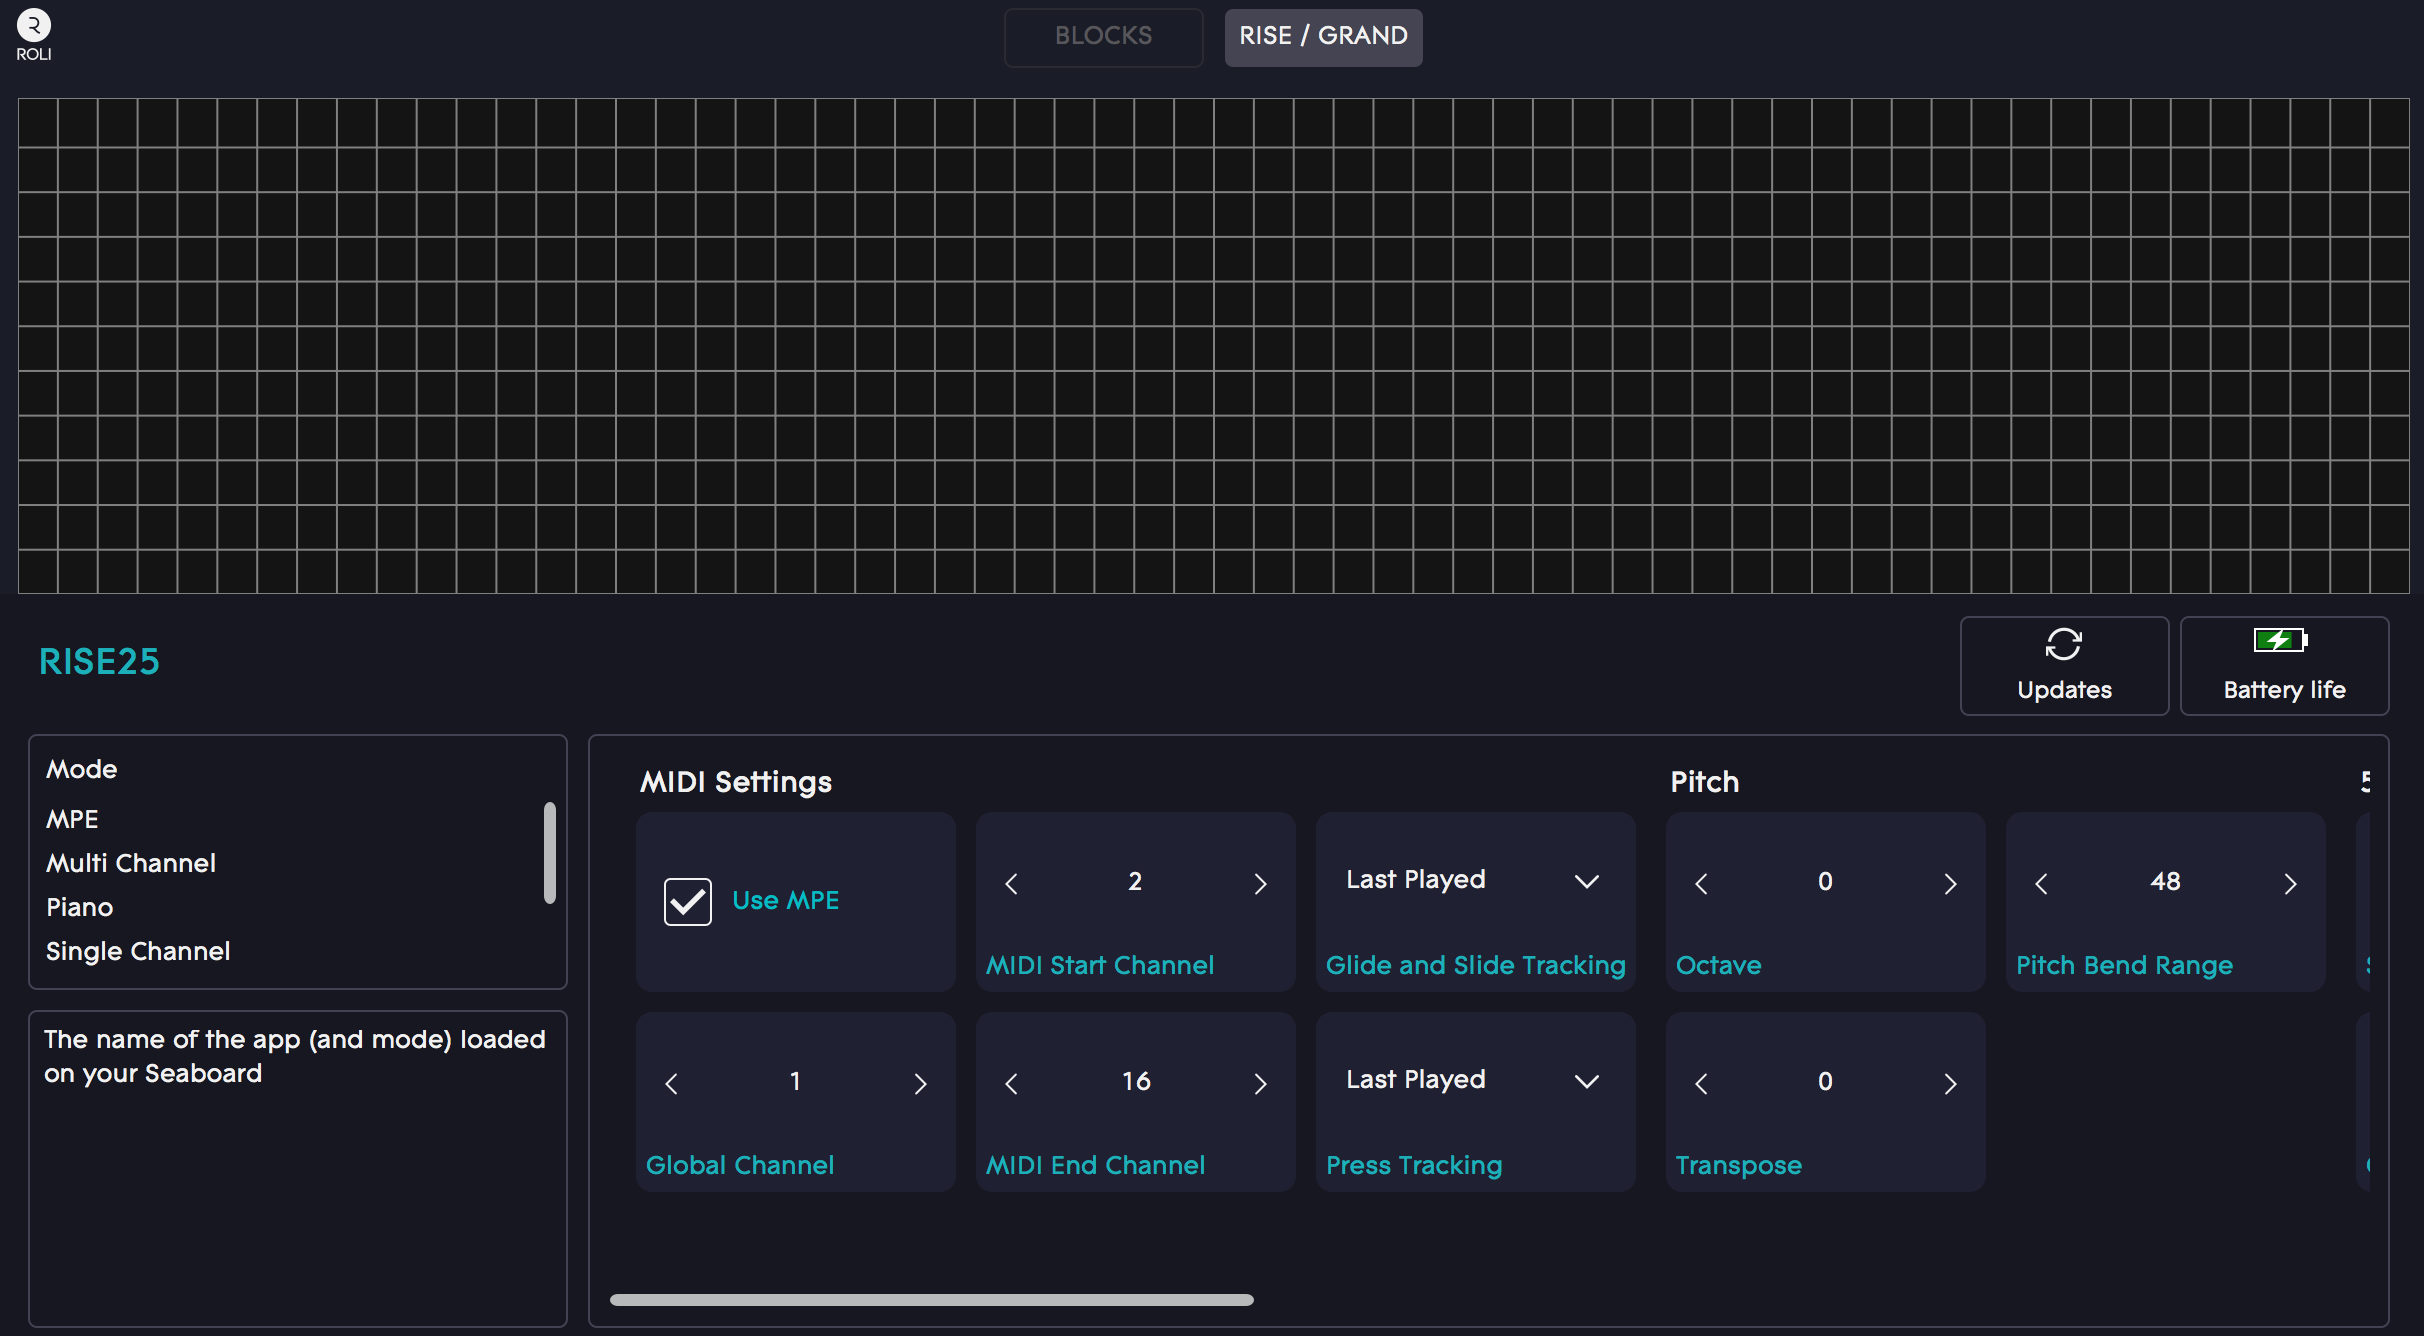 ROLI Dashboard – Falcon Settings